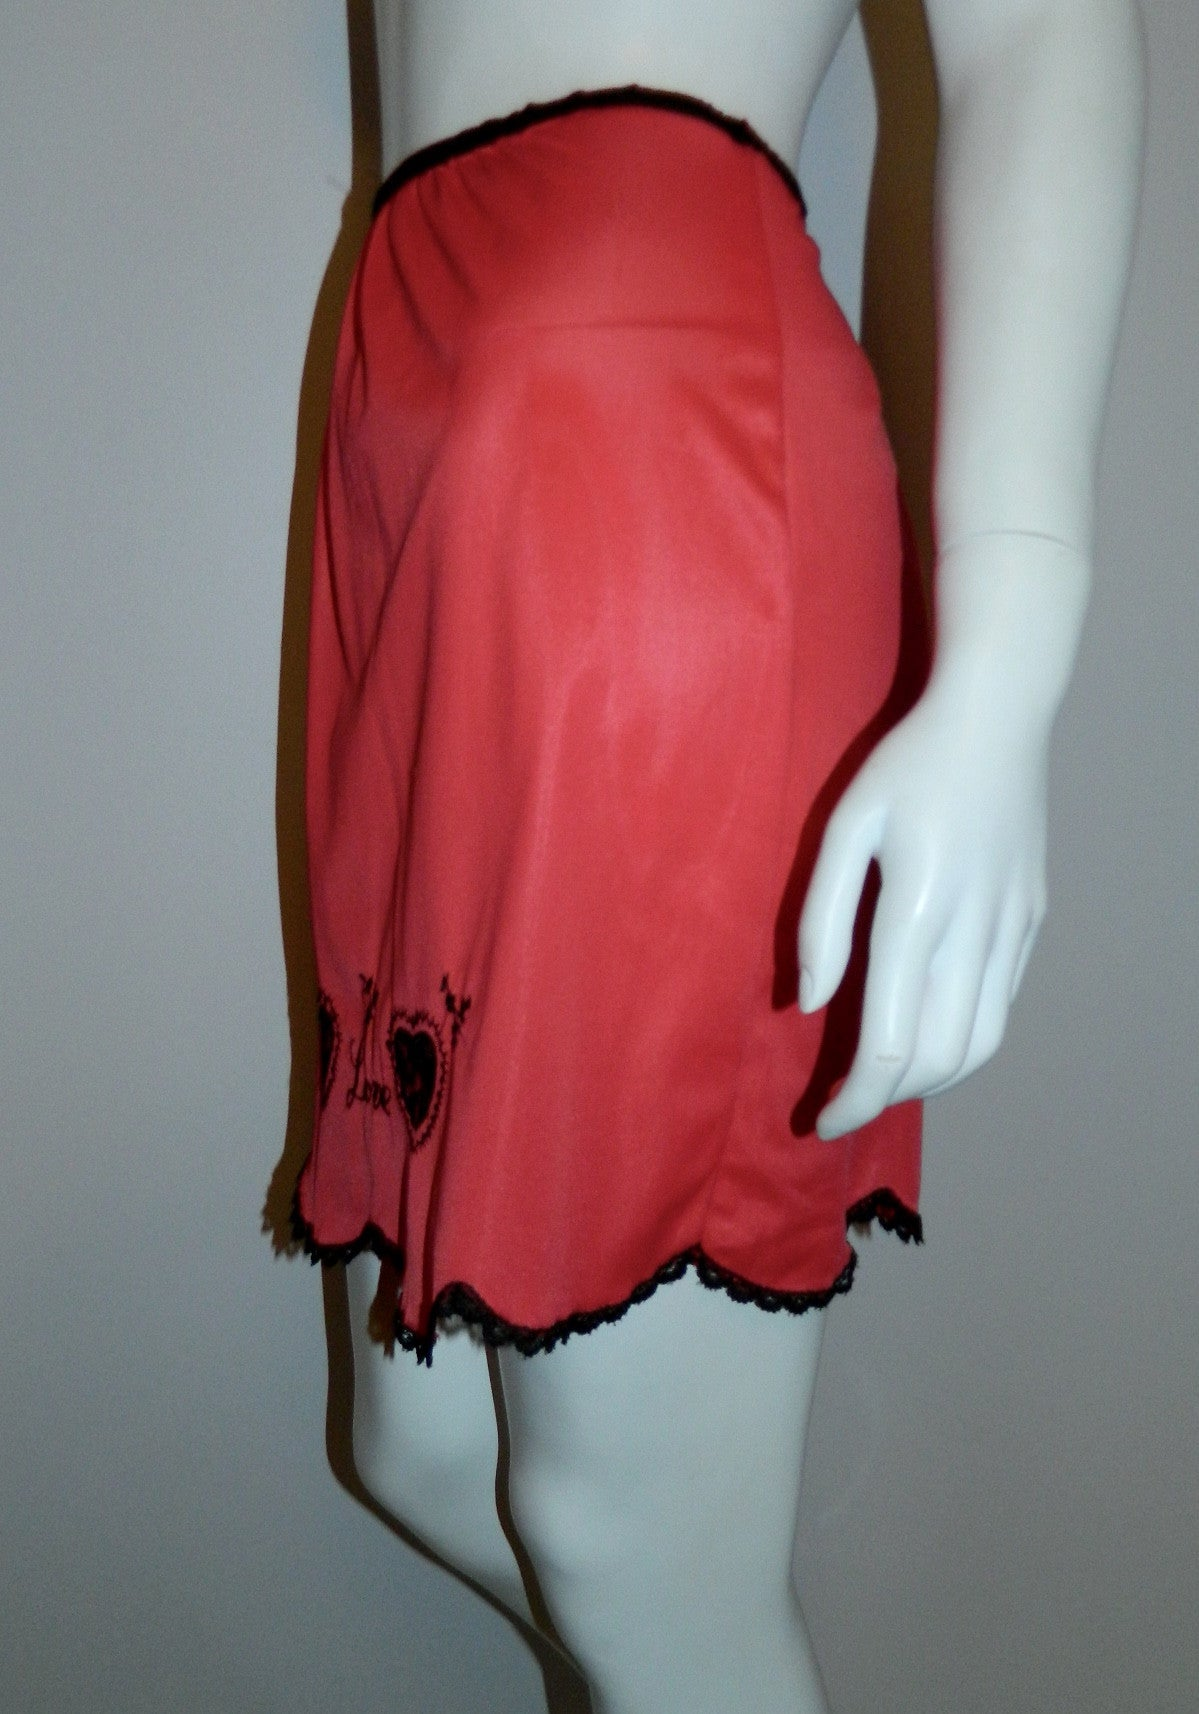 vintage 1960s half slip / red LOVE skirt black lace embroidery S - M